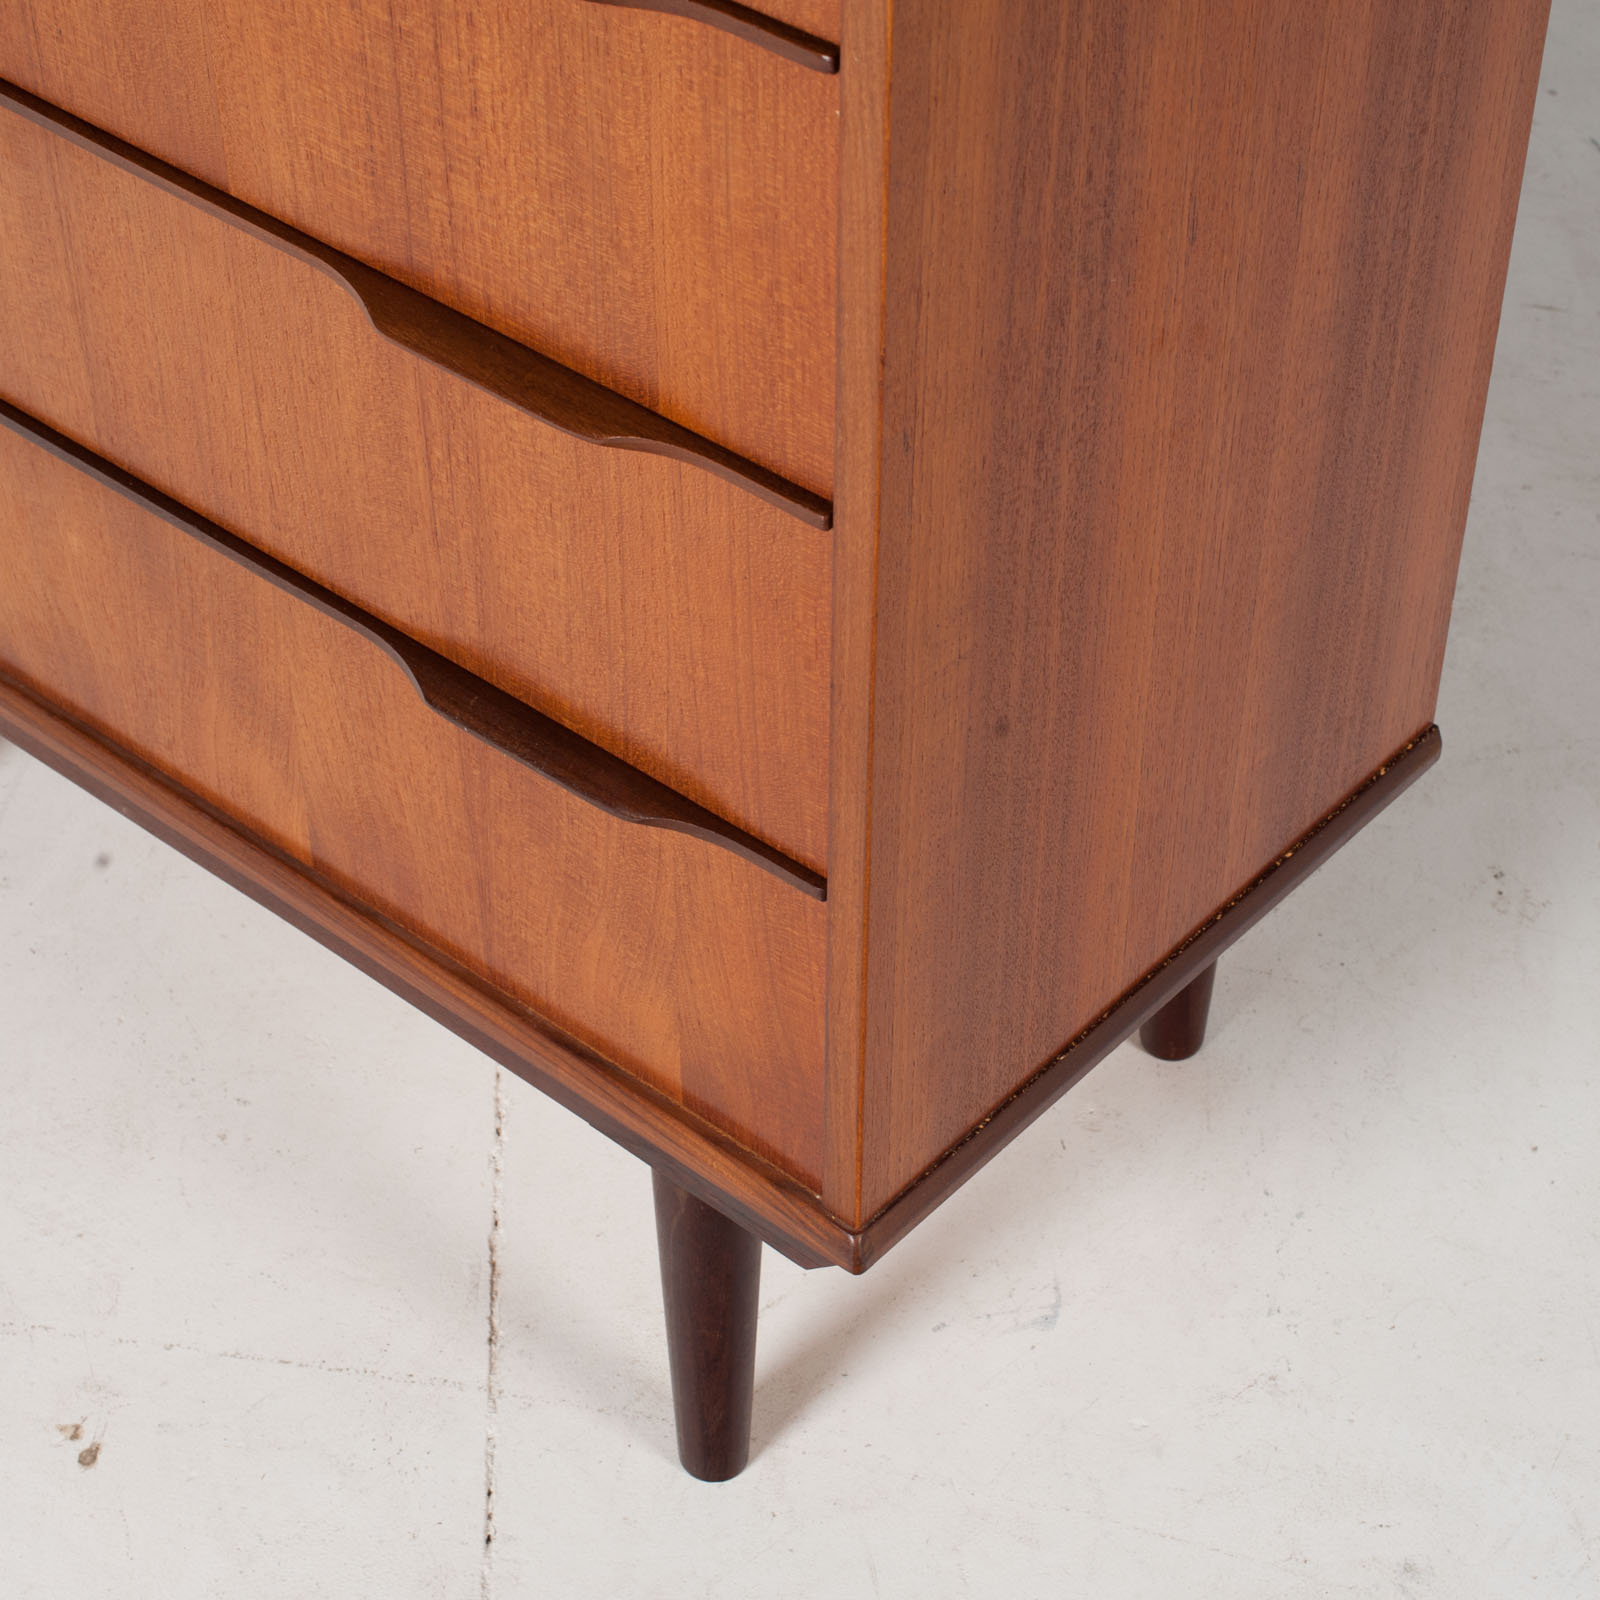 Deep Chest In Teak With Six Drawers And Lipped Handles, 1960s, Denmark8